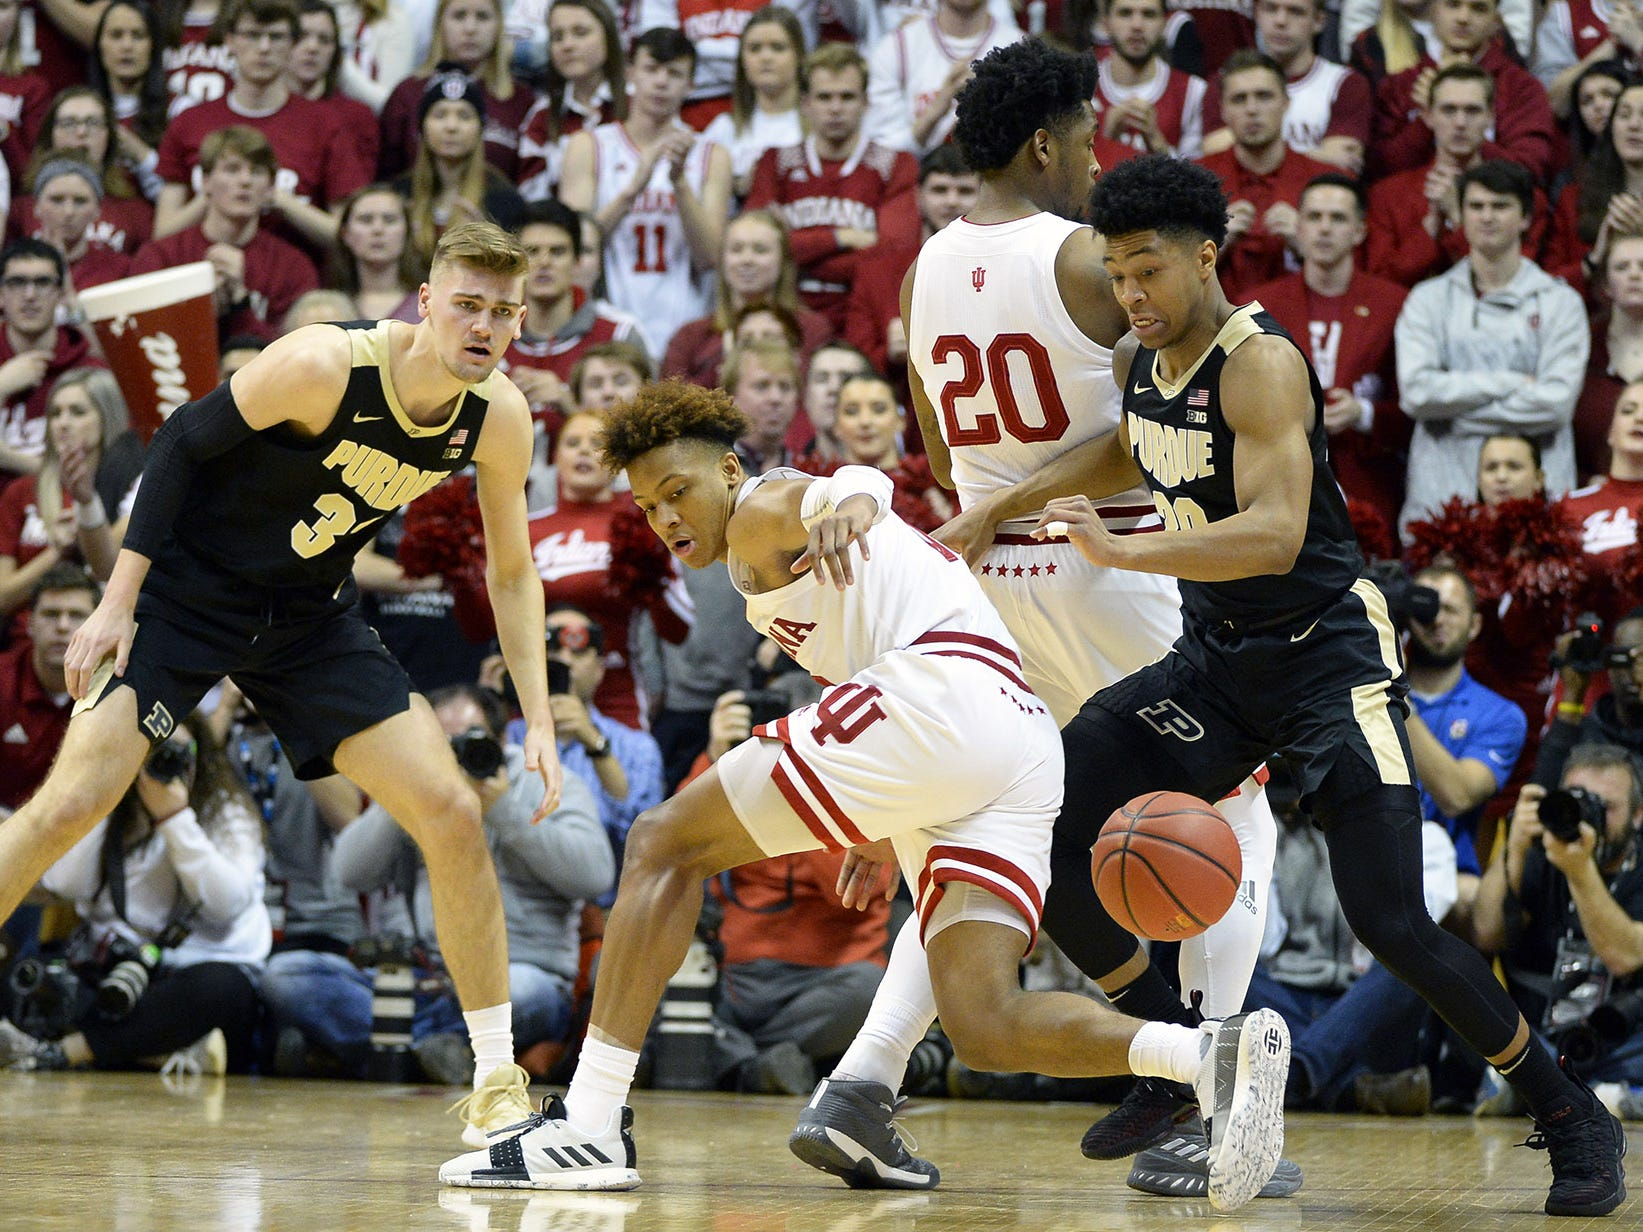 Indiana Hoosiers guard Romeo Langford (0) loses the ball during the game against Purdue at Simon Skjodt Assembly Hall in Bloomington, Ind., on Tuesday, Feb. 19, 2019.